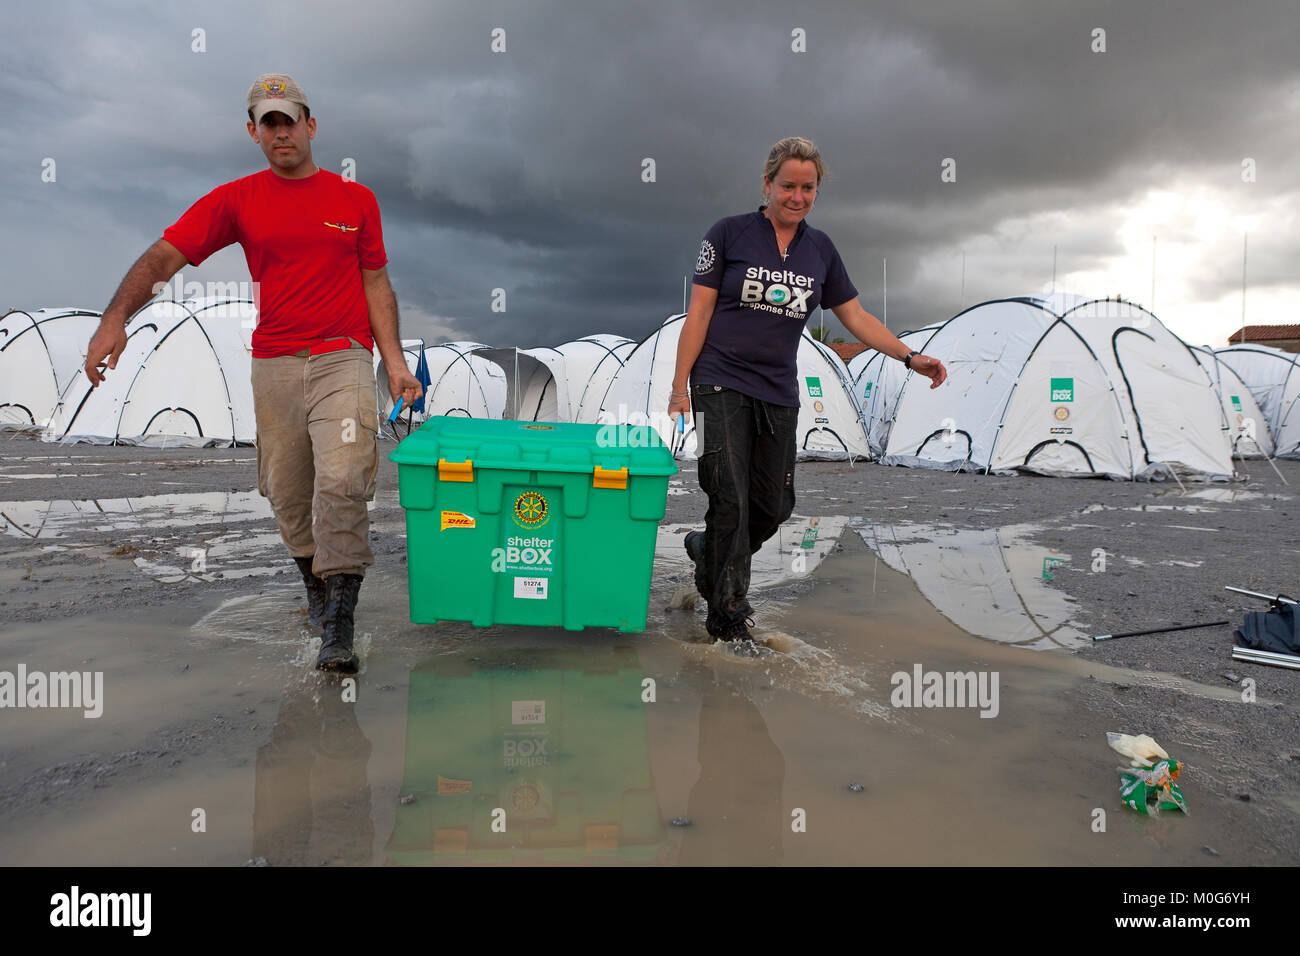 SRT Jodie Hurt (UK) with a Brazilian at Shelterbox camp at Uniao Dos Palmares, Alegoas, Brazil - Stock Image